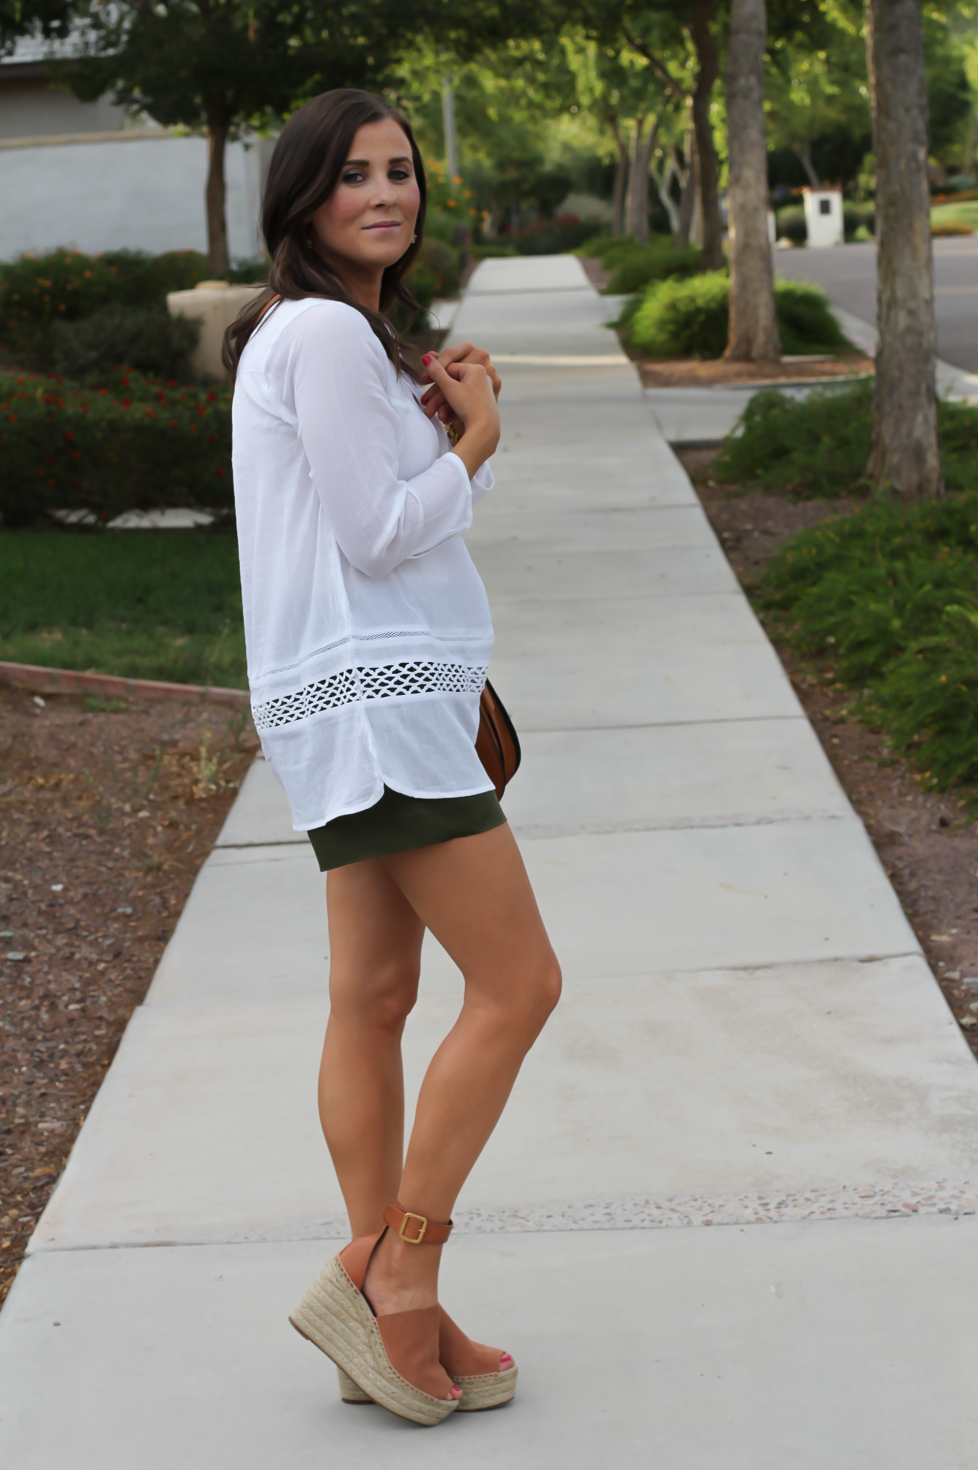 Gauze White Lace Tunic, Green Linen Shorts, Brown Suede Espadrilles, Brown Leather Crossbody Bag, Old Navy, J.Crew, Chloe, Tory Burch 10